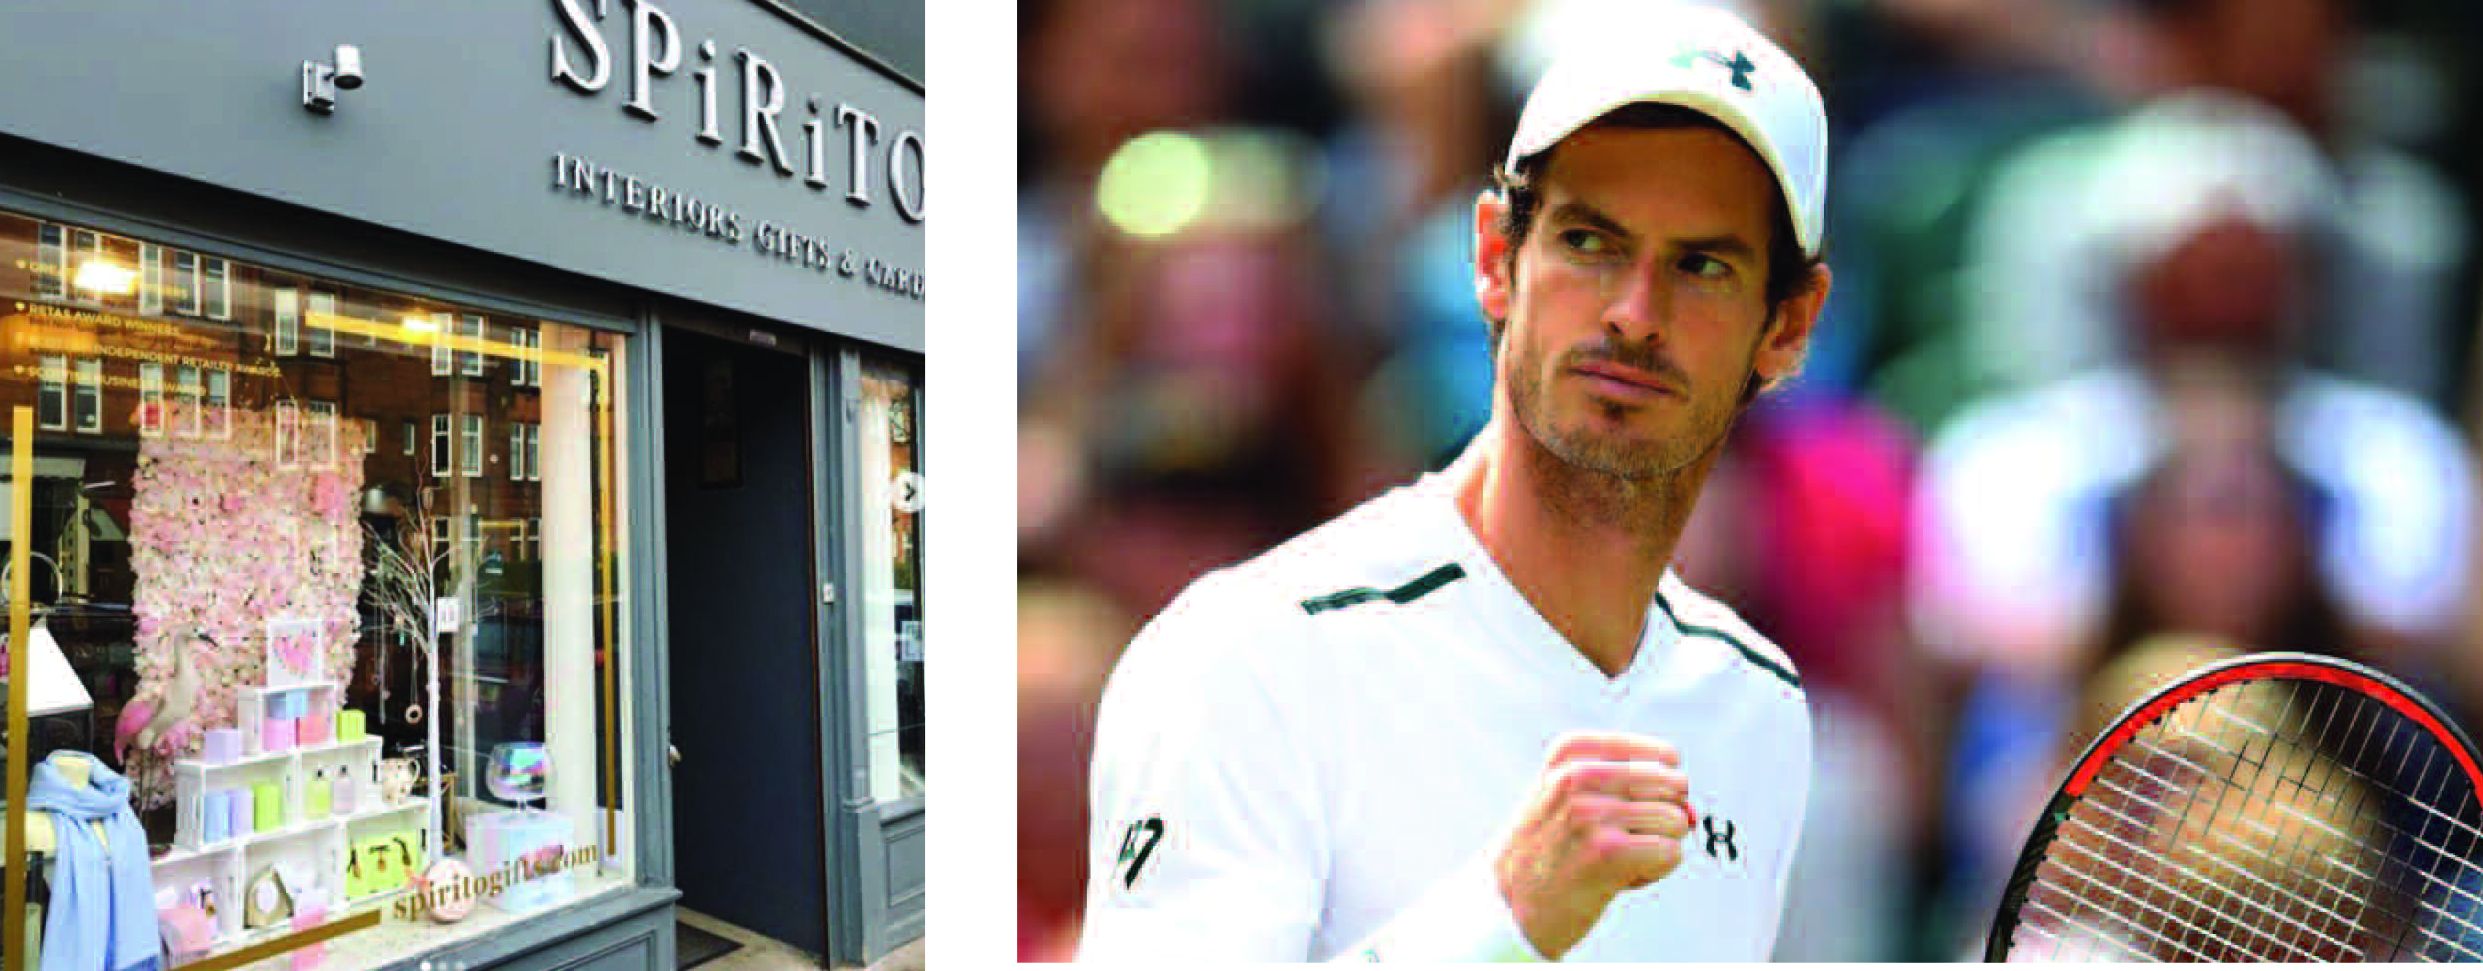 Above: Spirito' Denise Laird would love to welcome fellow Scot Andy Murray through the shop's doors.